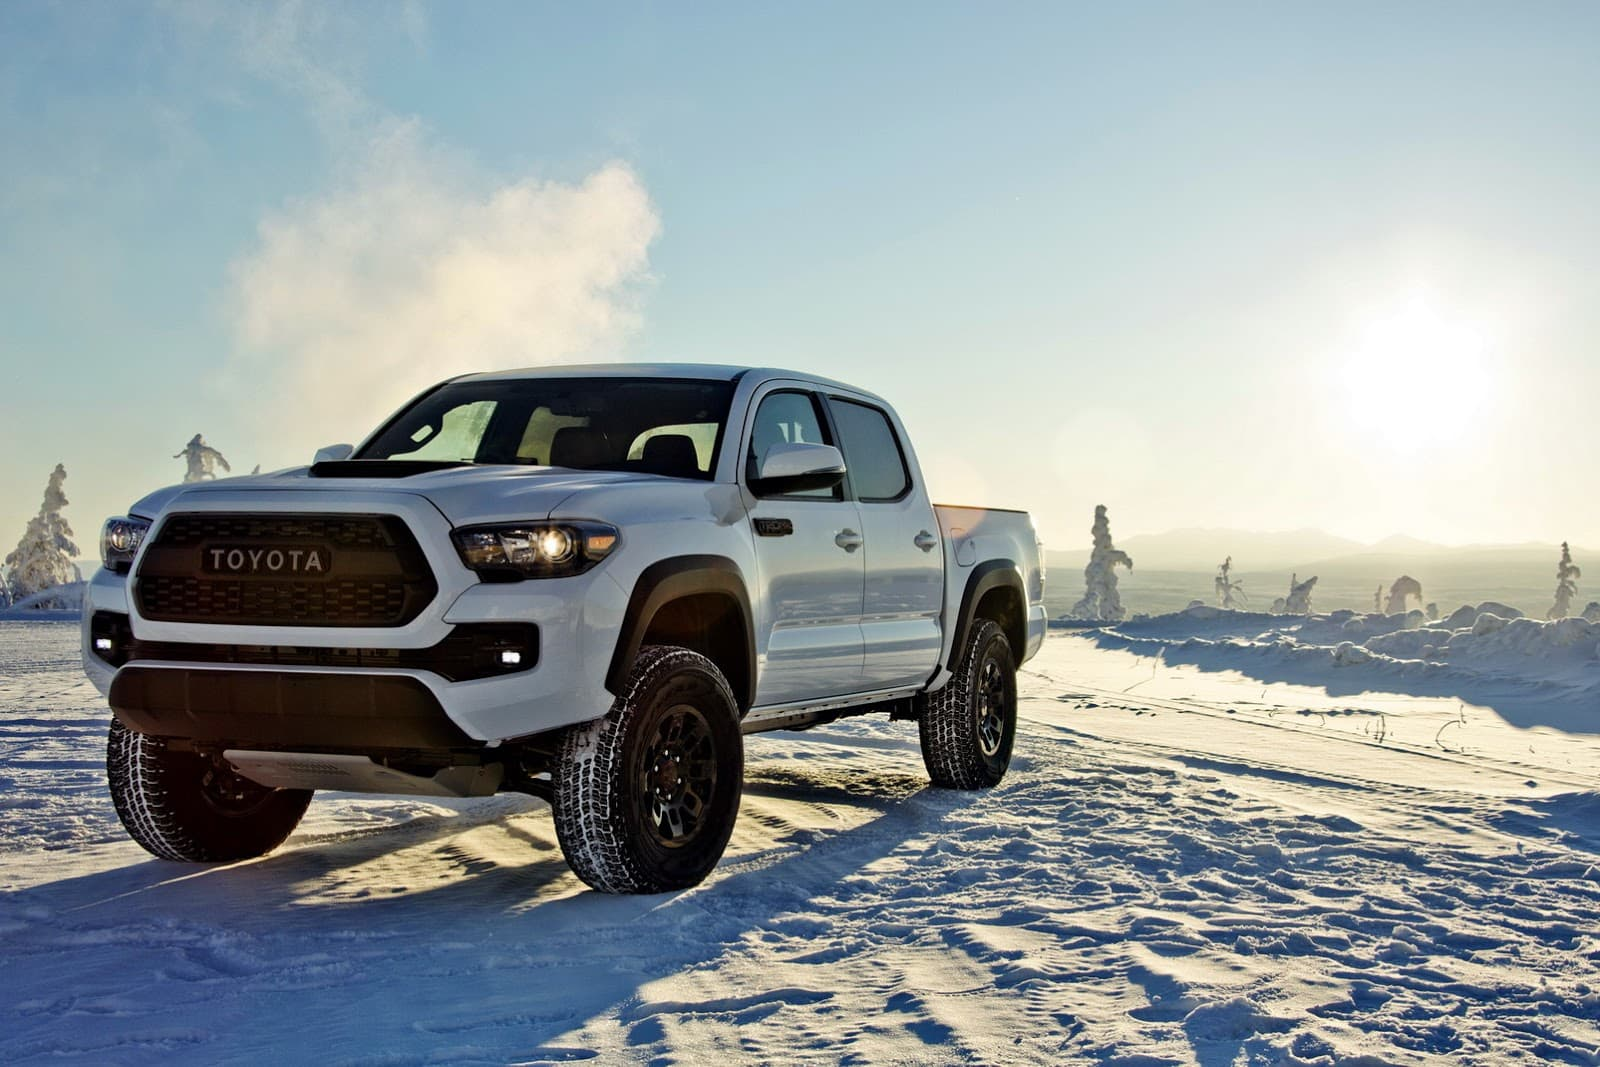 17+ Toyota Tacoma 2016 wallpapers HD High Resolution Download